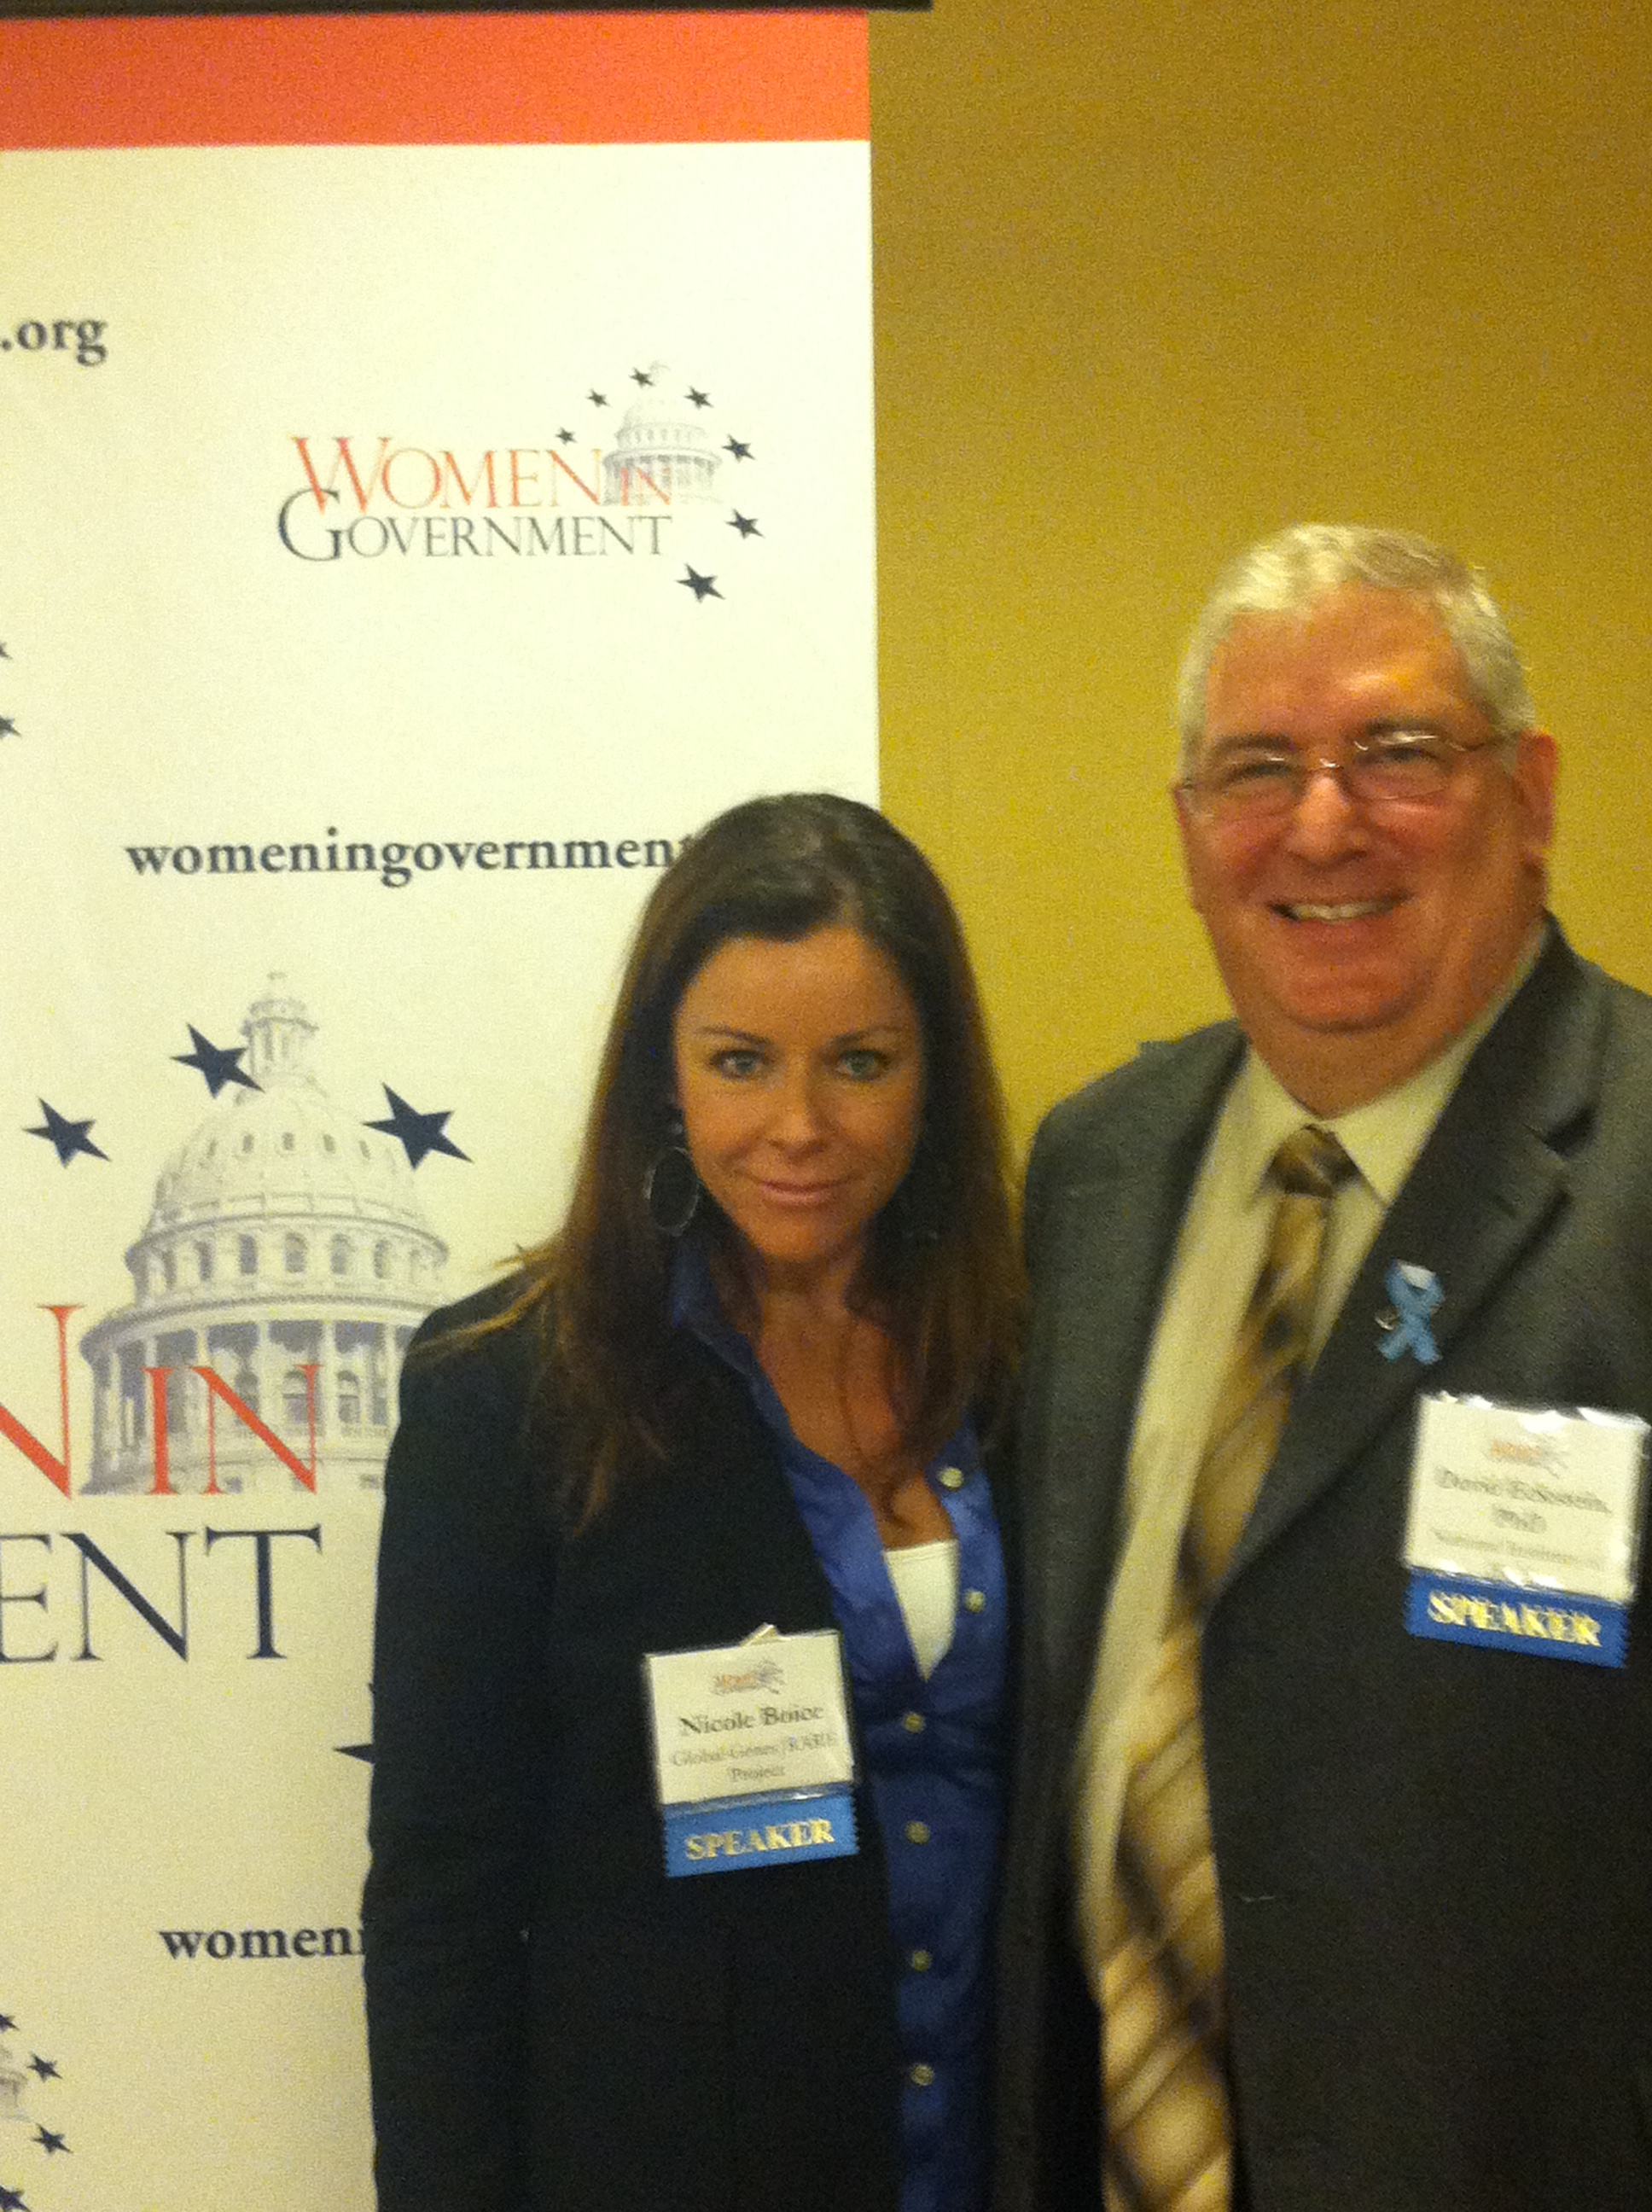 Nicole Boice, of Global Genes | R.A.R.E. Project, stands beside Dr. David Eckstein, of the National Institutes of Health.